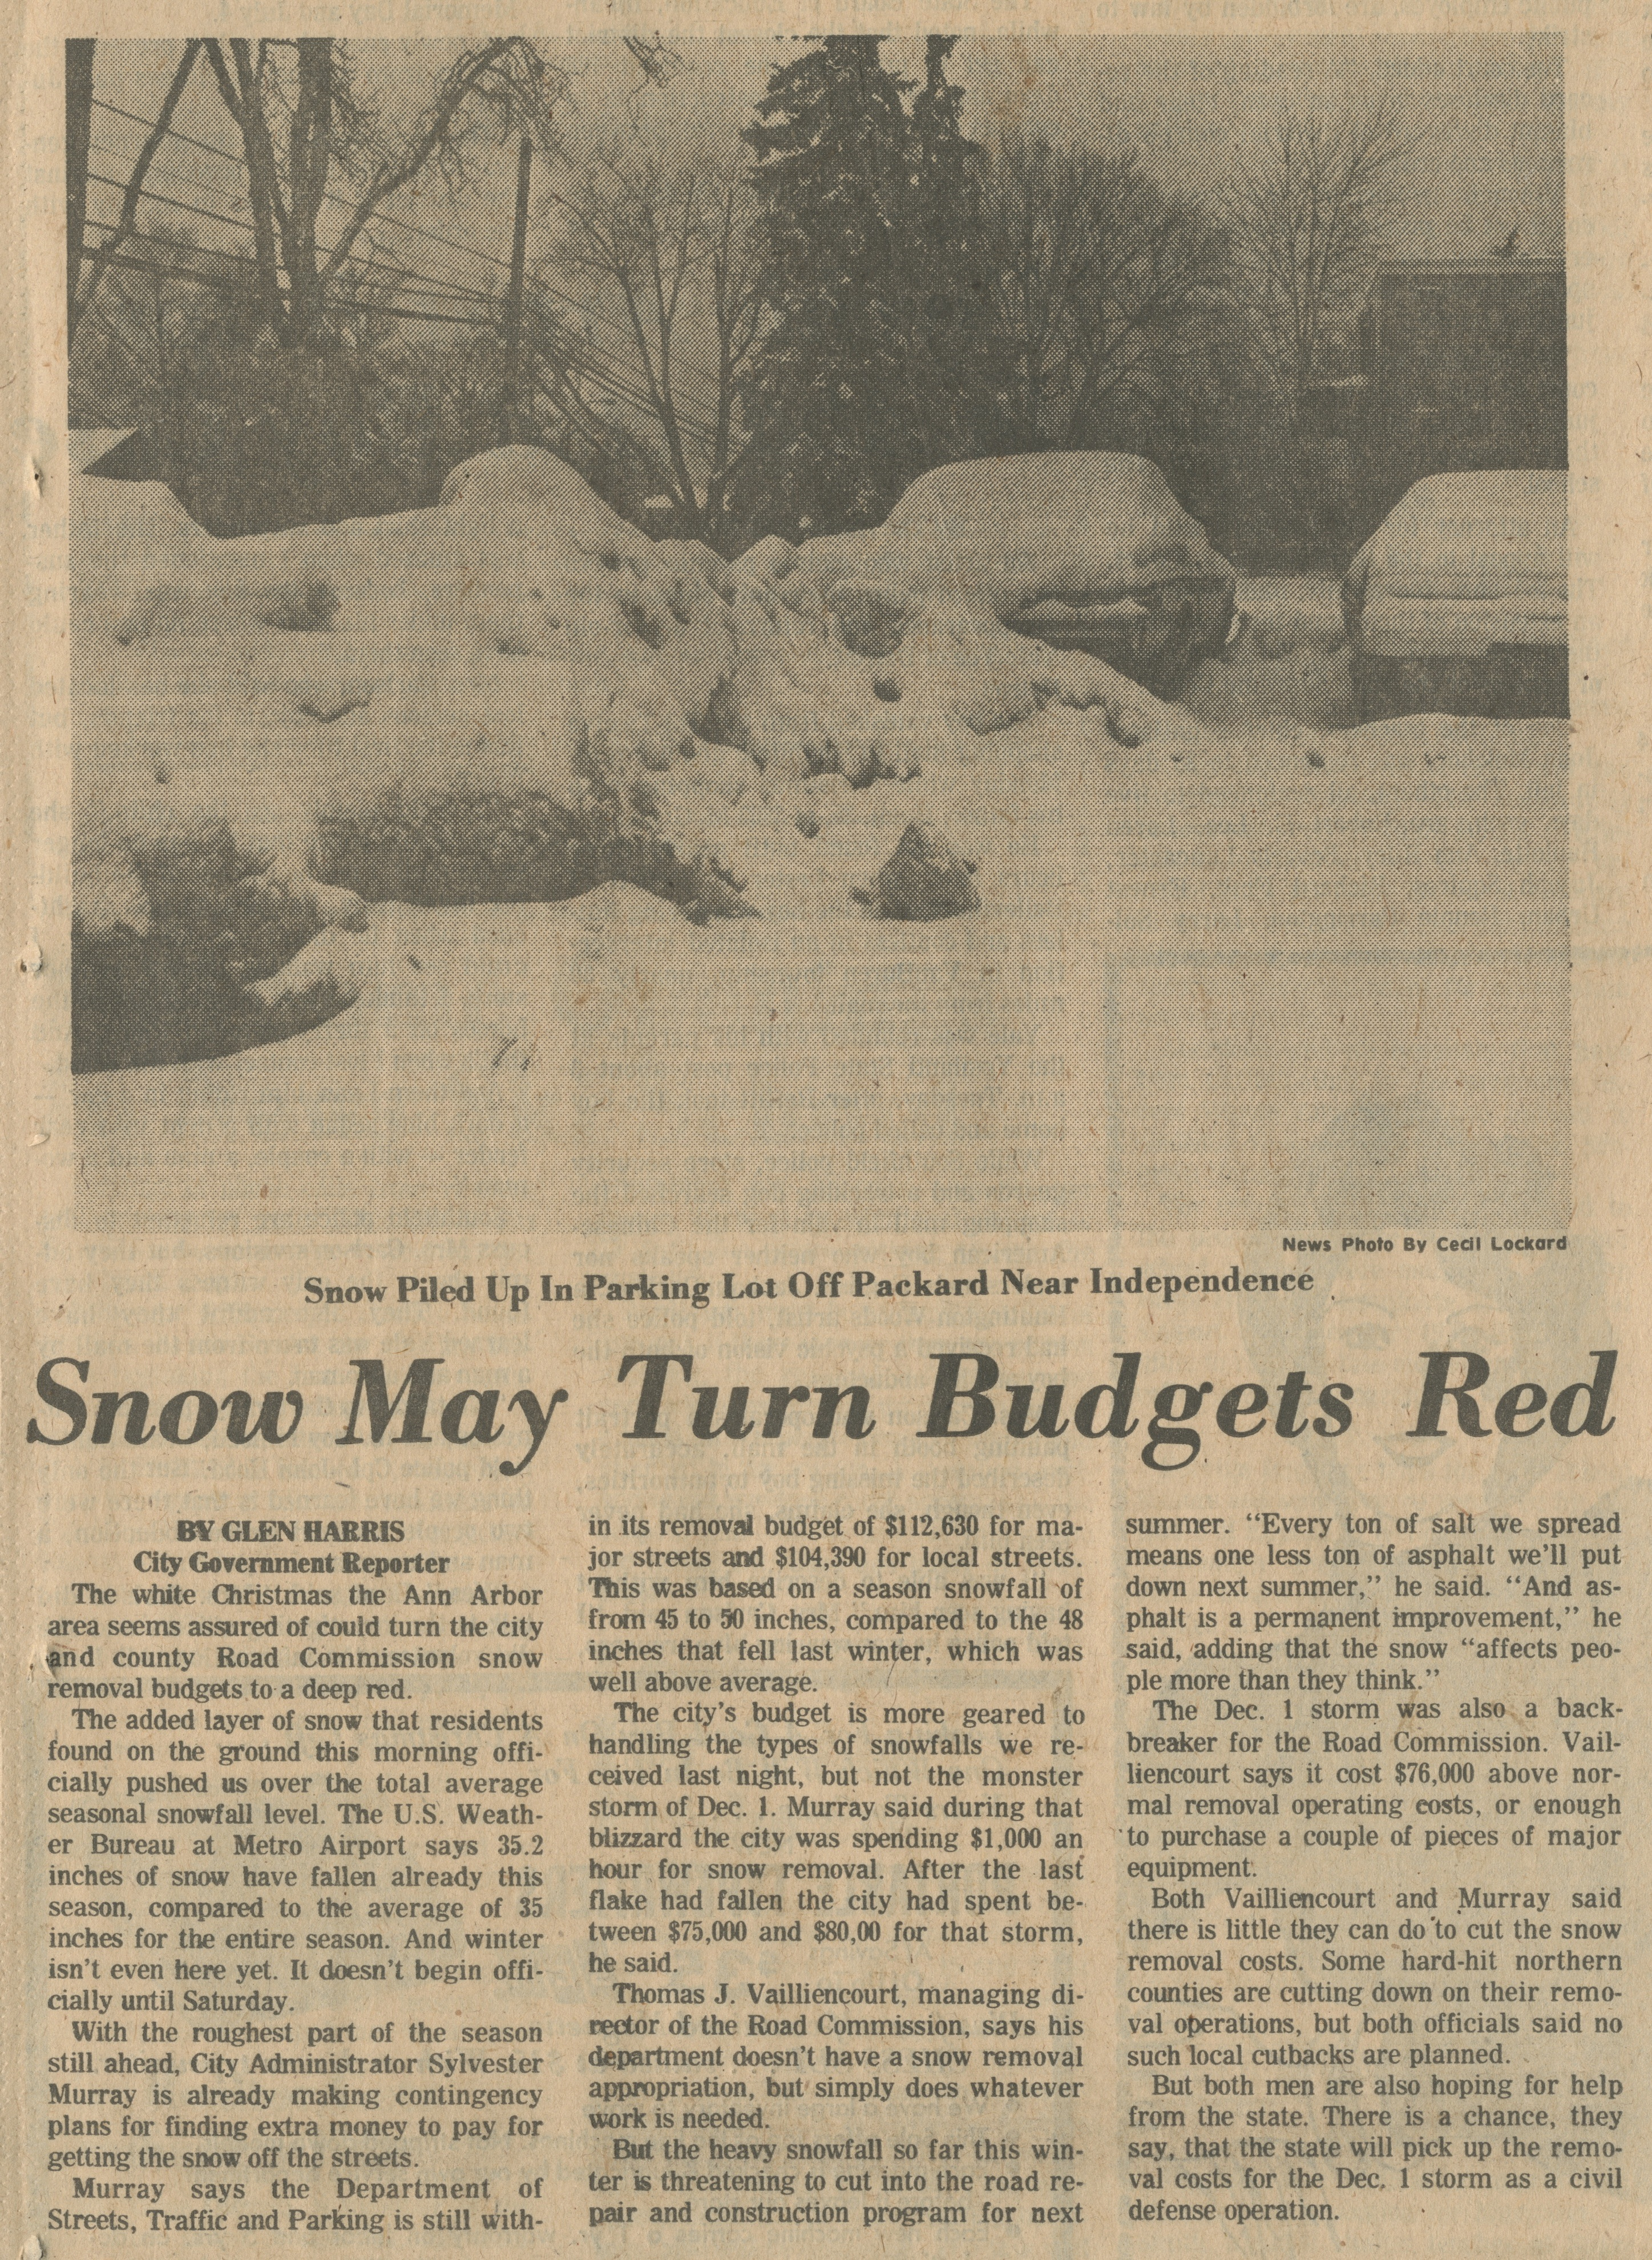 Snow May Turn Budgets Red image